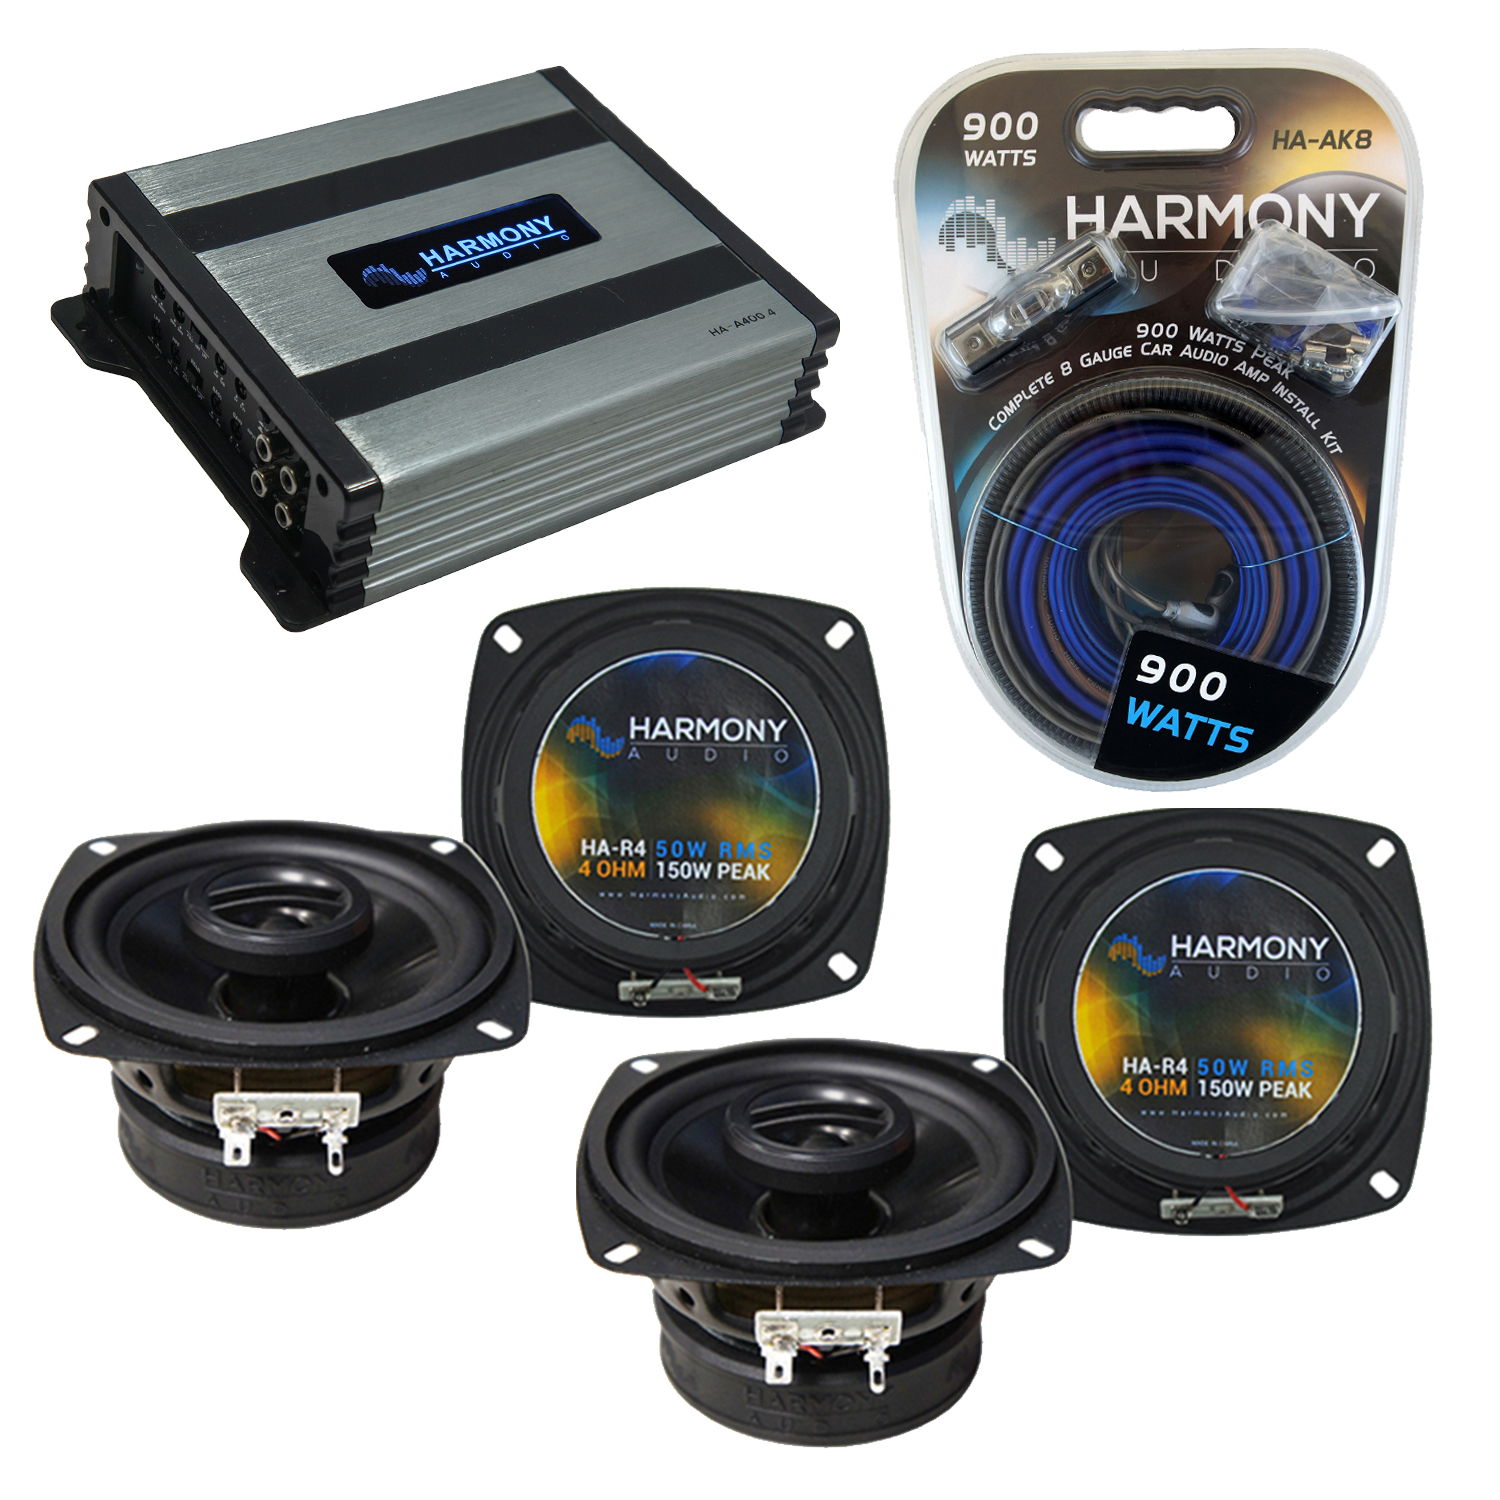 Compatible with Suzuki Sidekick 1996-1998 Factory Speaker Replacement Harmony (2) R4 & Harmony HA-A400.4 Amp